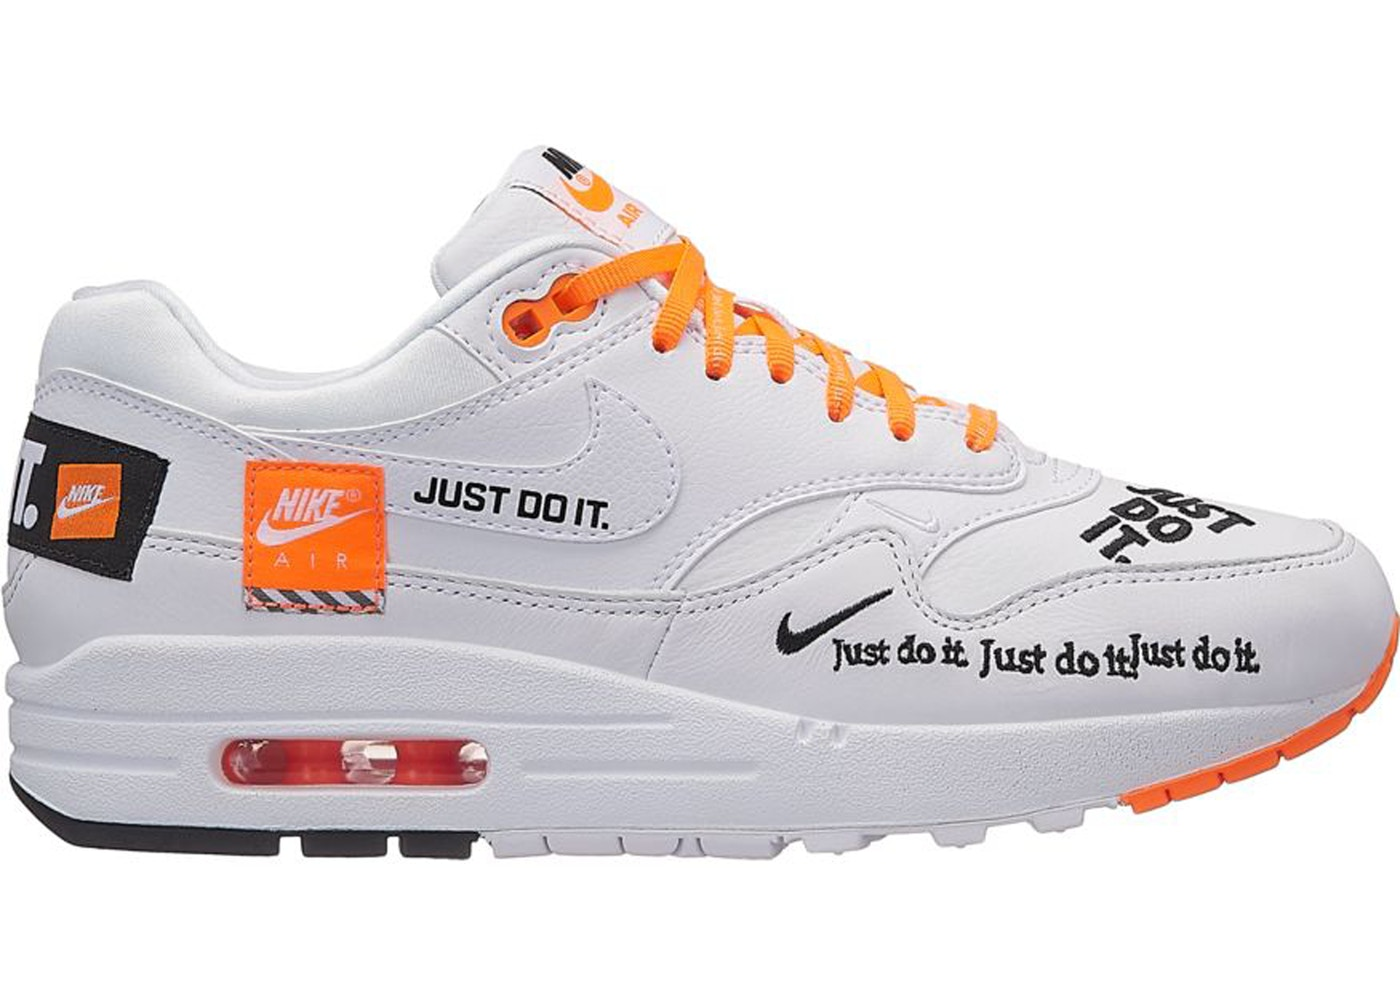 Nike Do Air Max 1 Just Do It Pack White